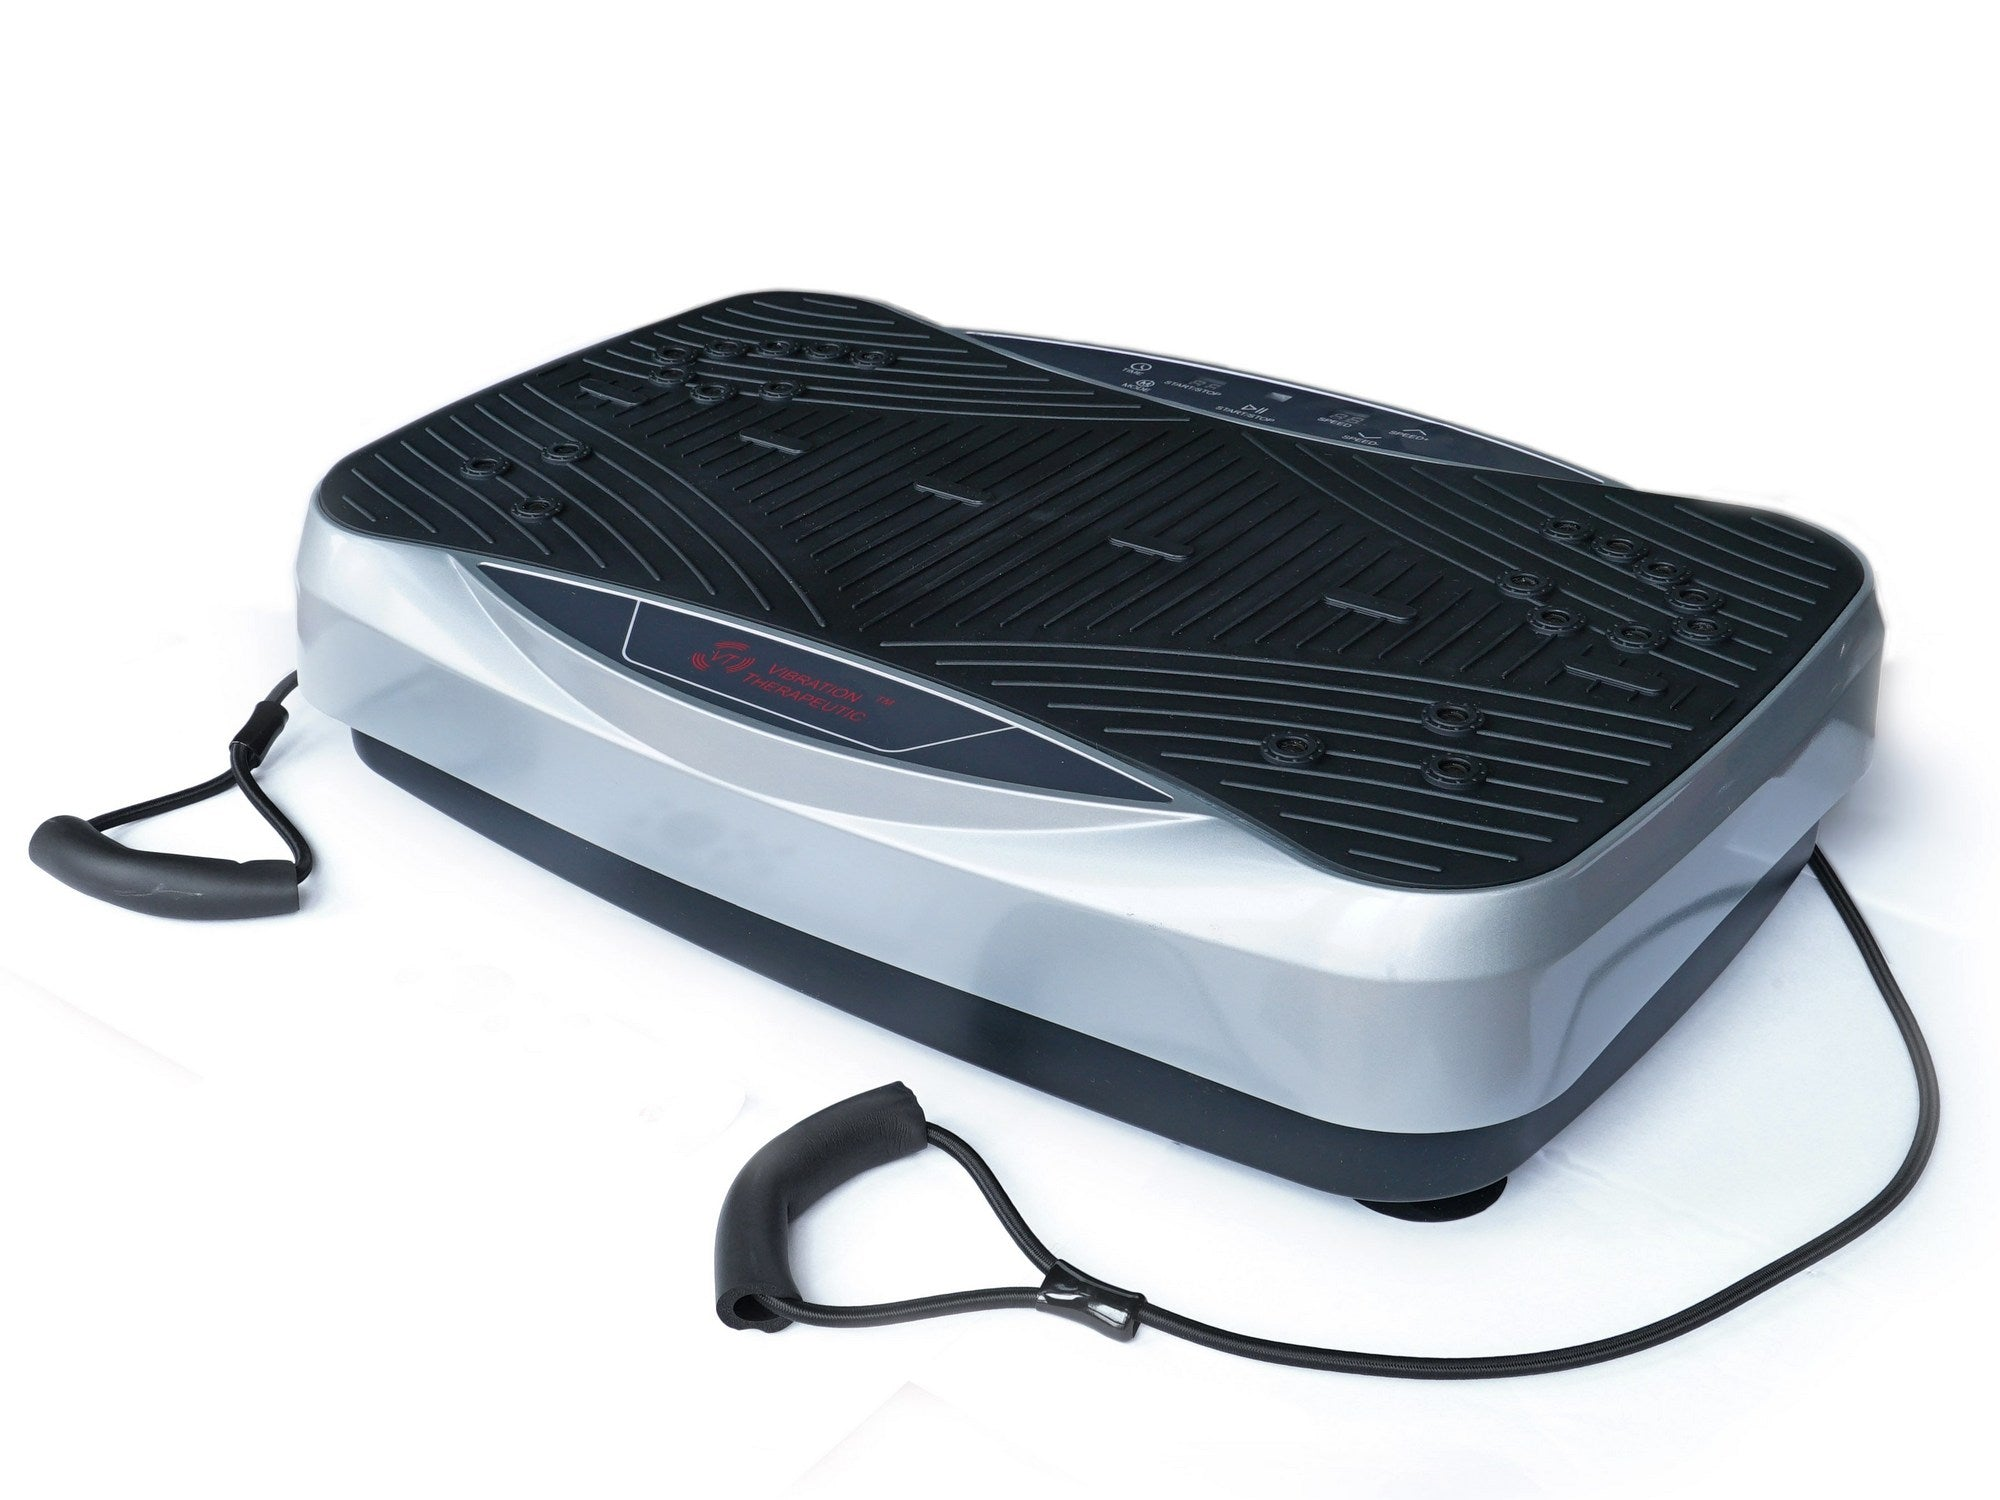 VT017 Vibration Plate User Reviews